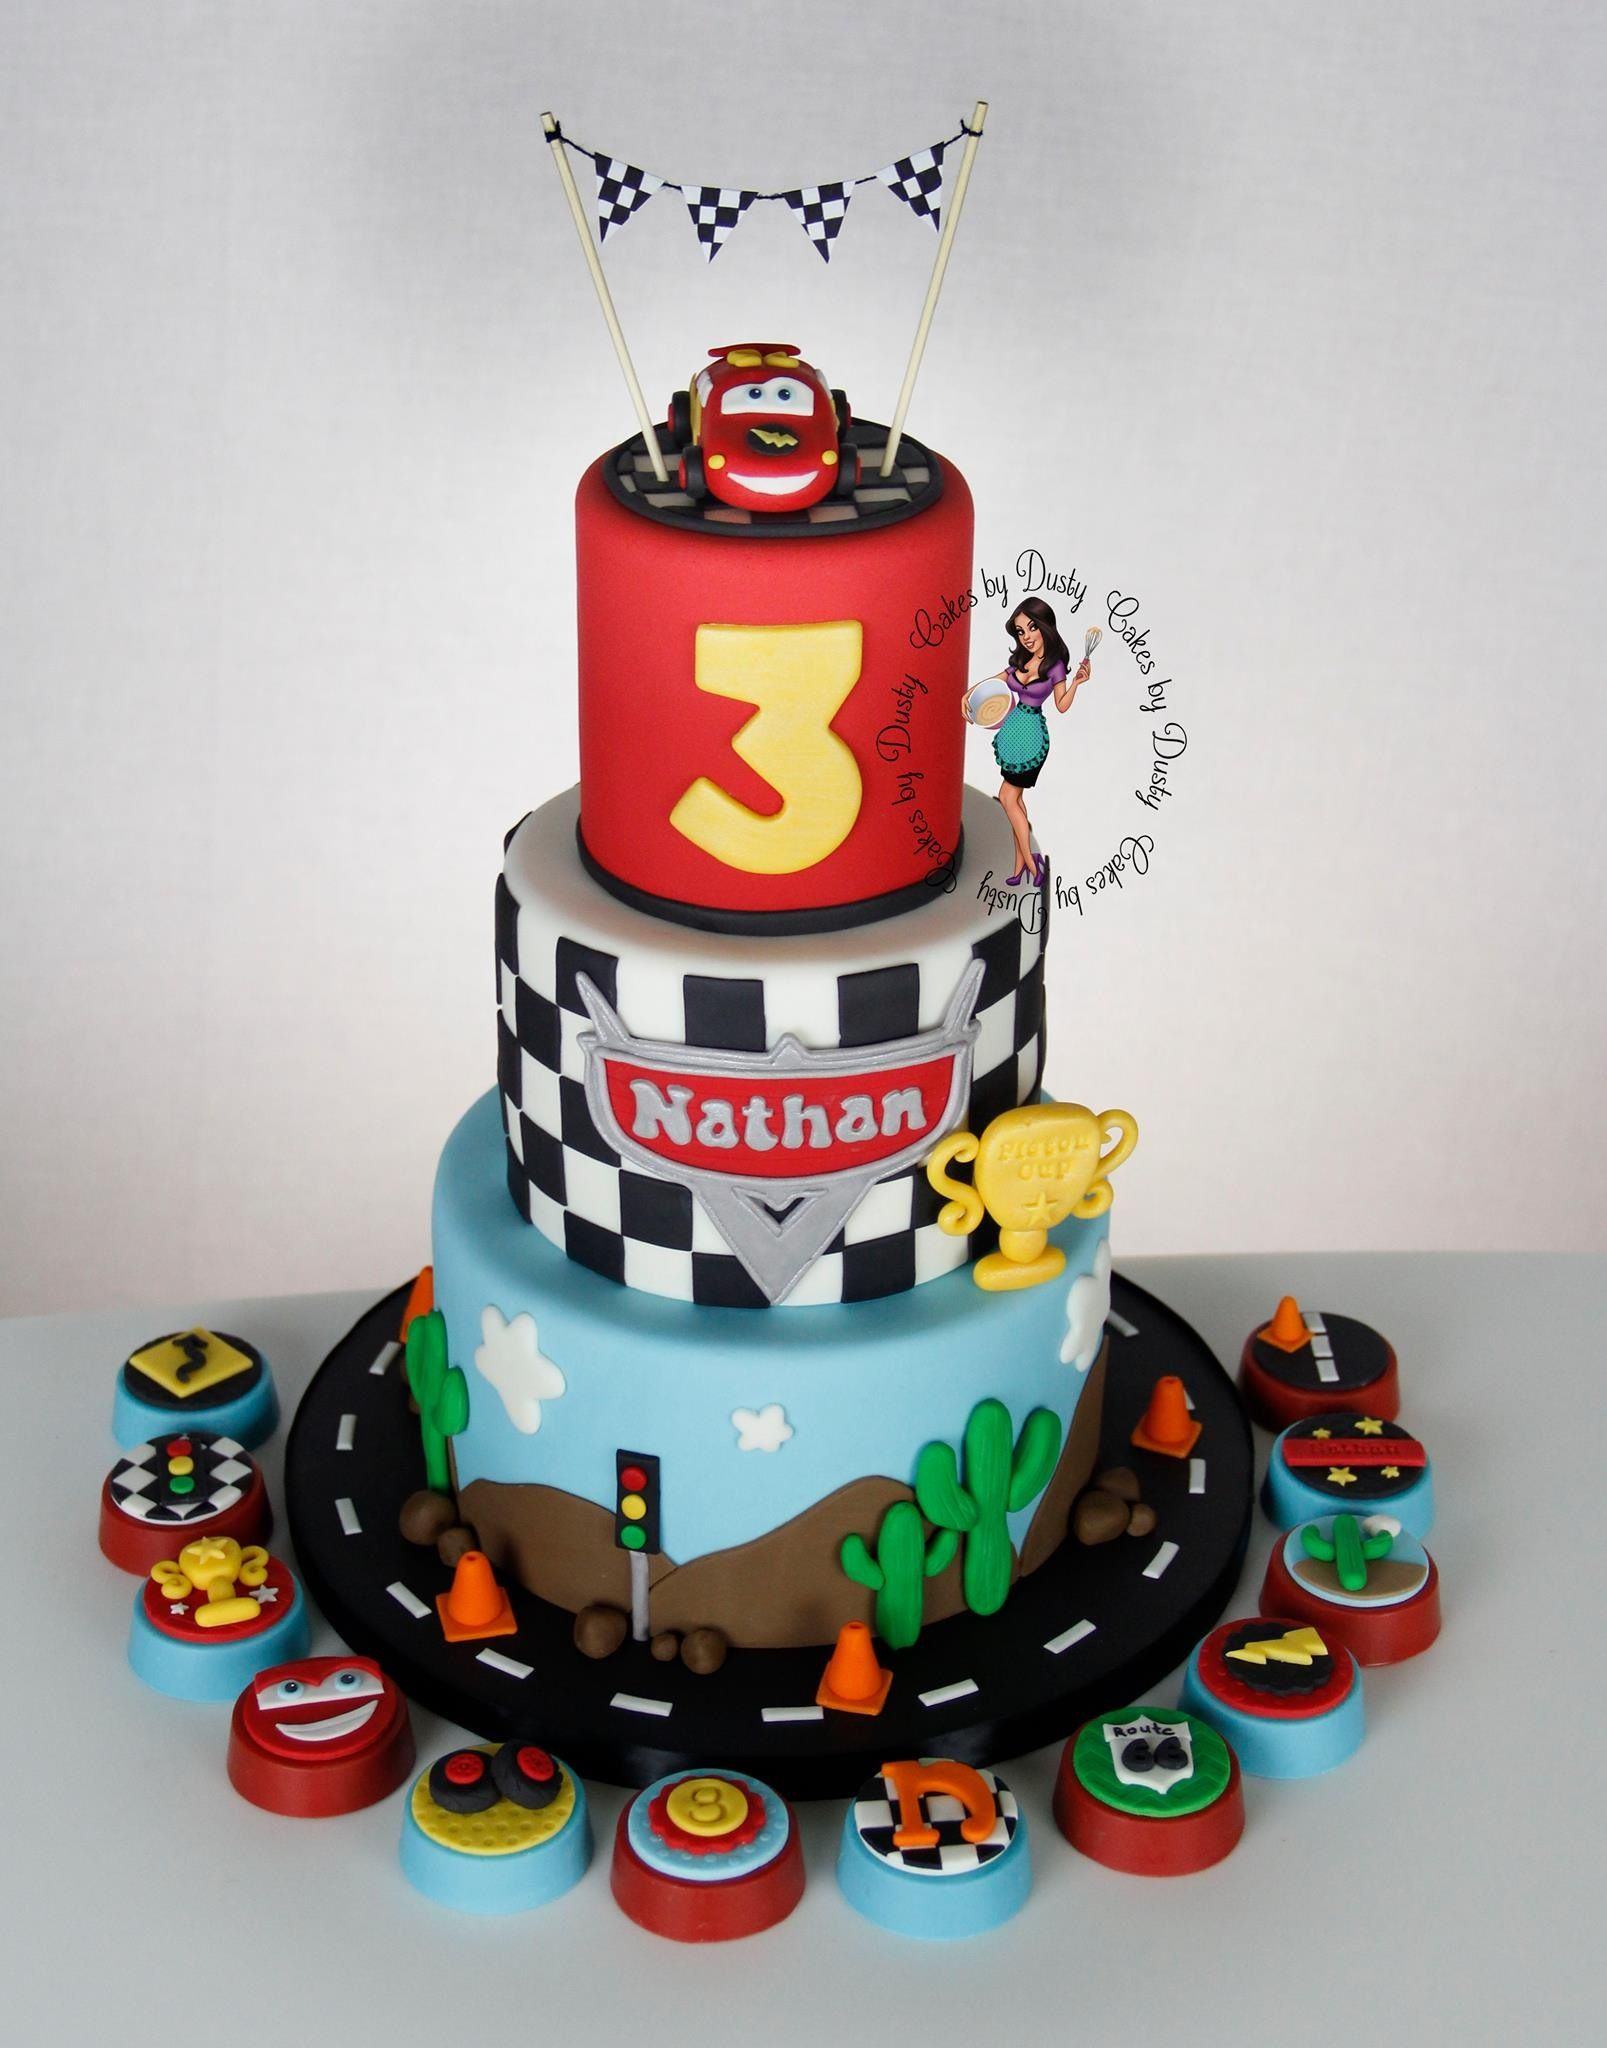 httpcakesbydustyblogspotcom Childrens CakesCupcakesCookies